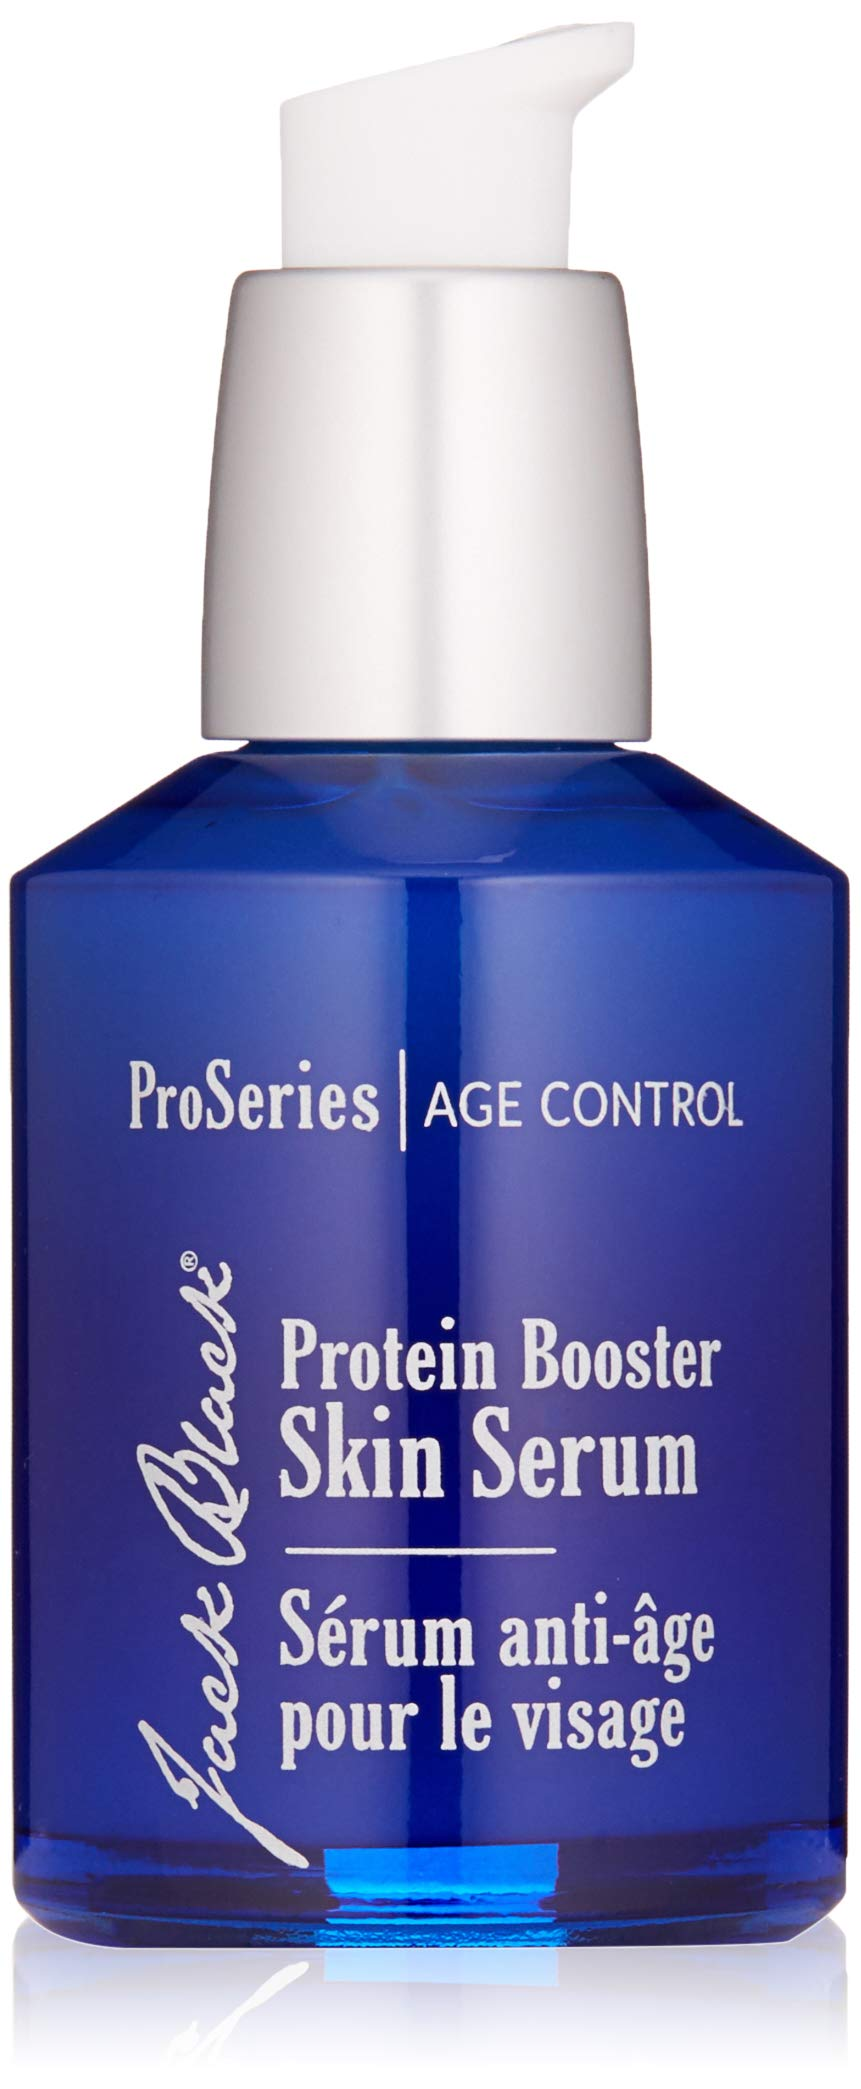 JACK BLACK – Protein Booster Skin Serum – ProSeries Men's Age Specialist Product, Peptides, Antioxidants and Organic Omega-3, Reduces Visible Signs of Aging, Improves Skin Tone, 2 oz